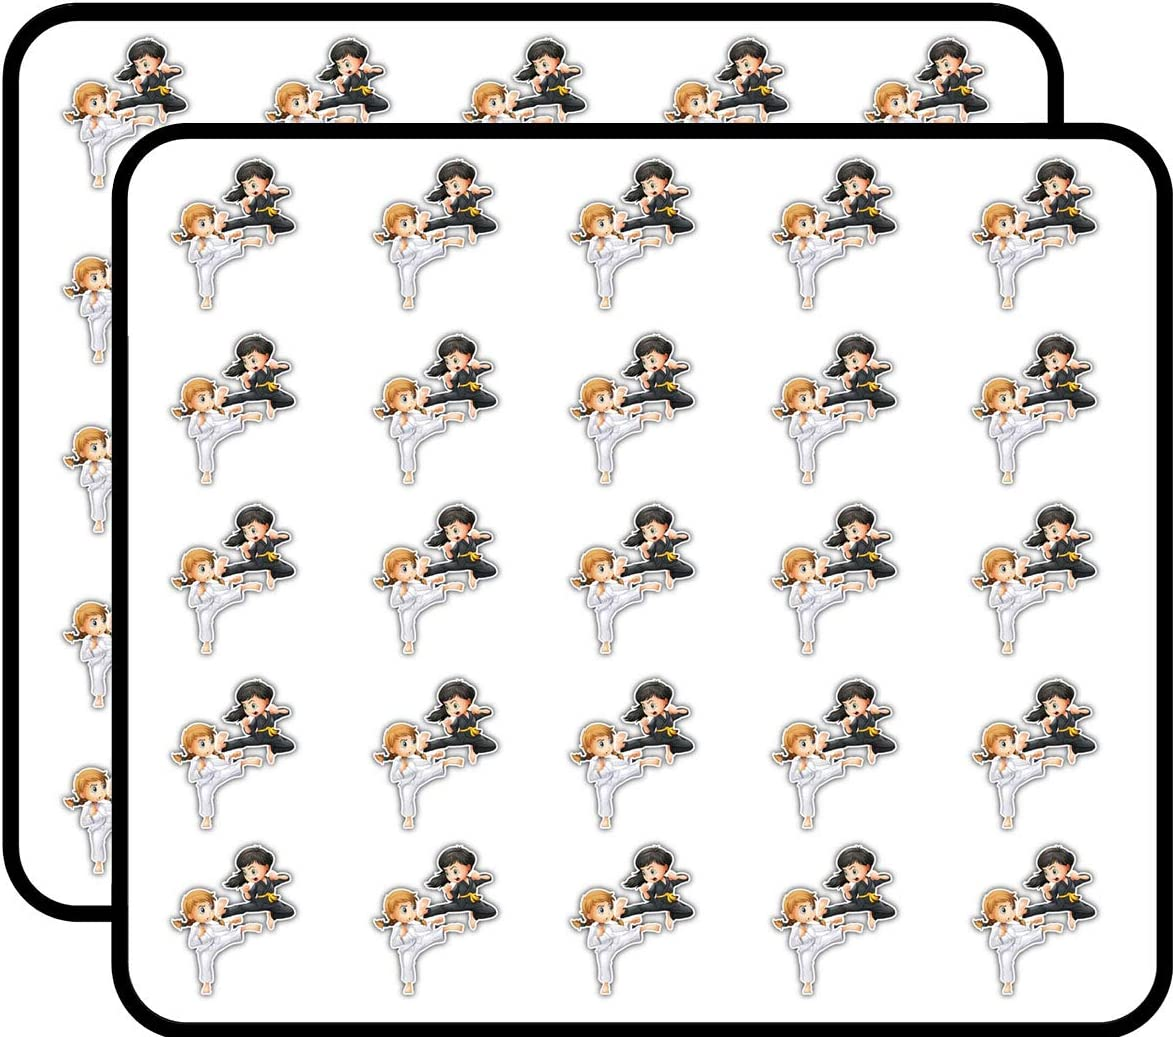 Karate Girls Fight Sticker for Scrapbooking, Calendars, Arts, Kids DIY Crafts, Album, Bullet Journals 50 Pack